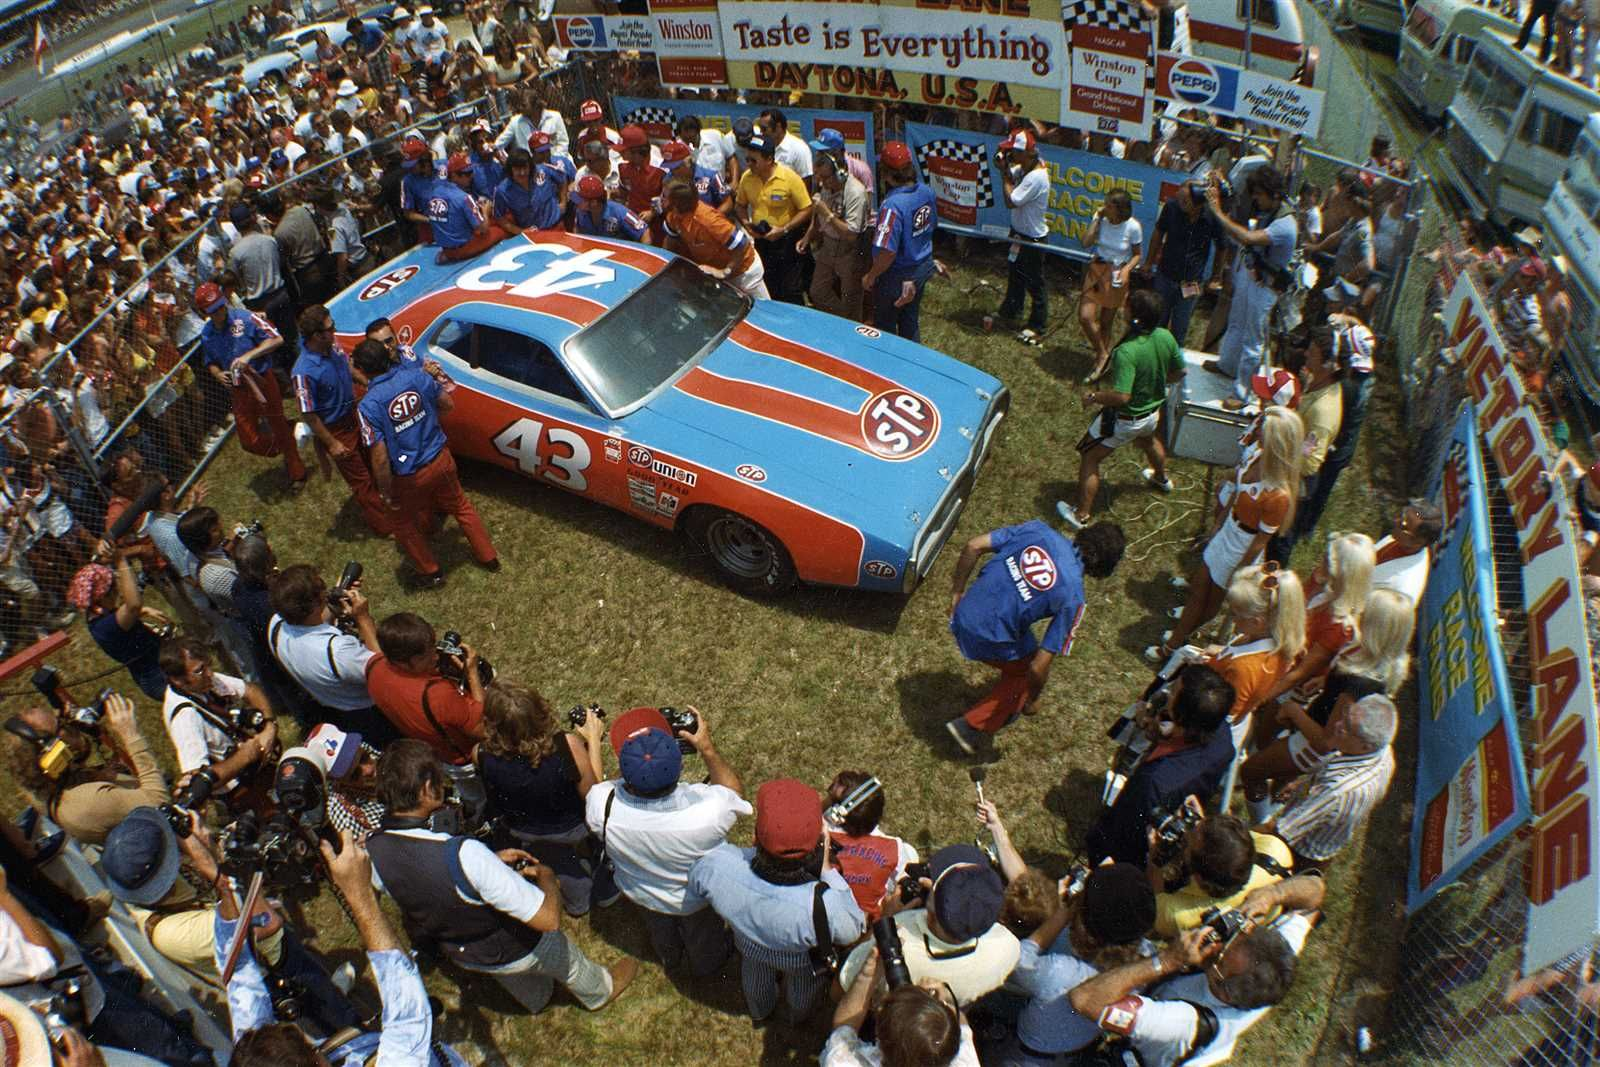 Gallery Landing Page Official Site Of Nascar Richard Petty Nascar Racing American Racing